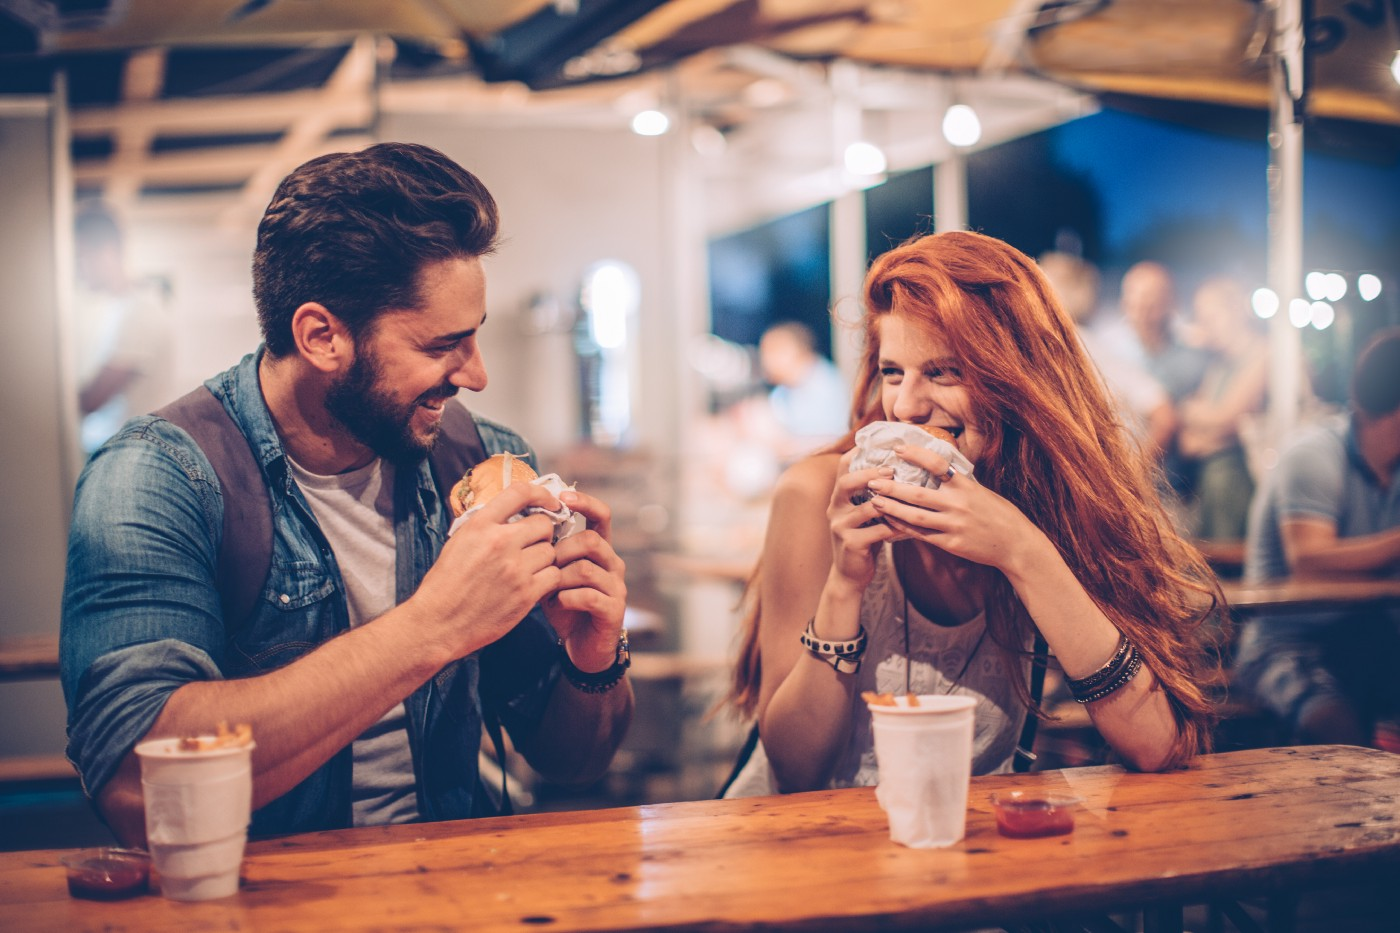 A man with dark hair and a beard sits with a woman with long, red hair. They are eating and smiling at each other, clearing enjoying being in each other's company.